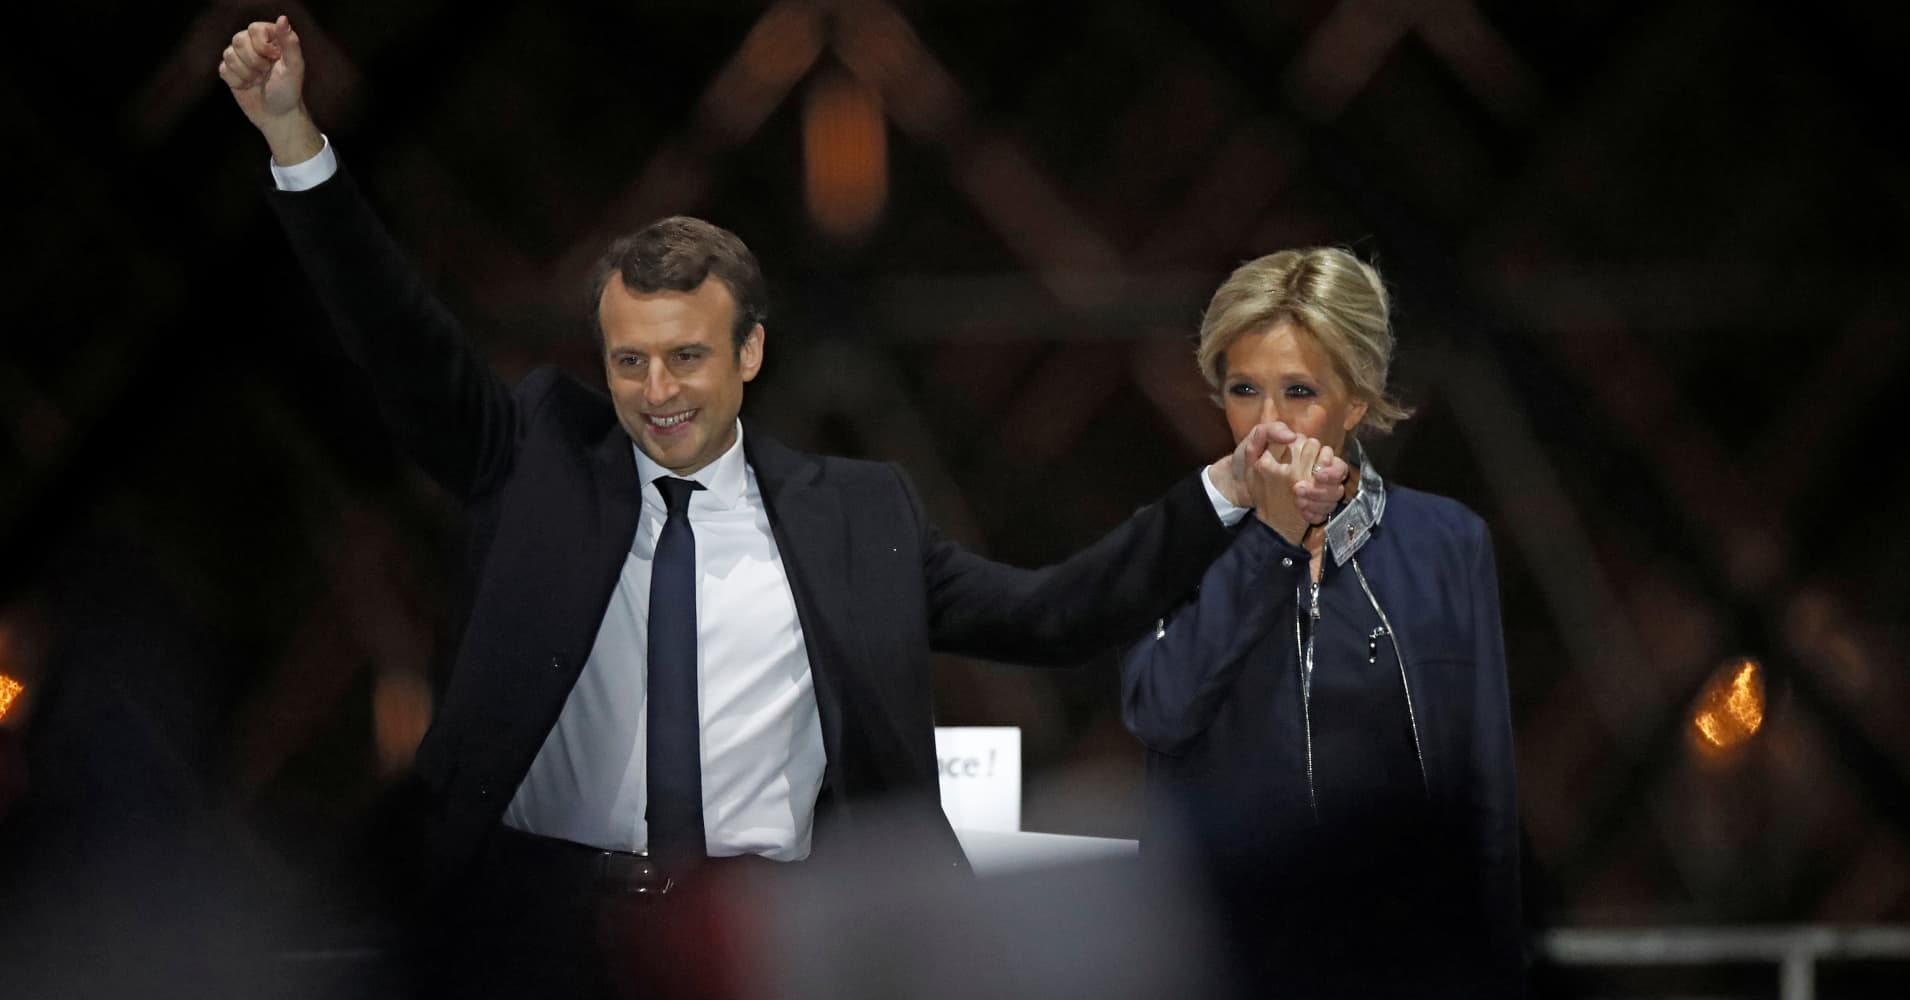 Making sense of the currency market's strange reaction to the French election